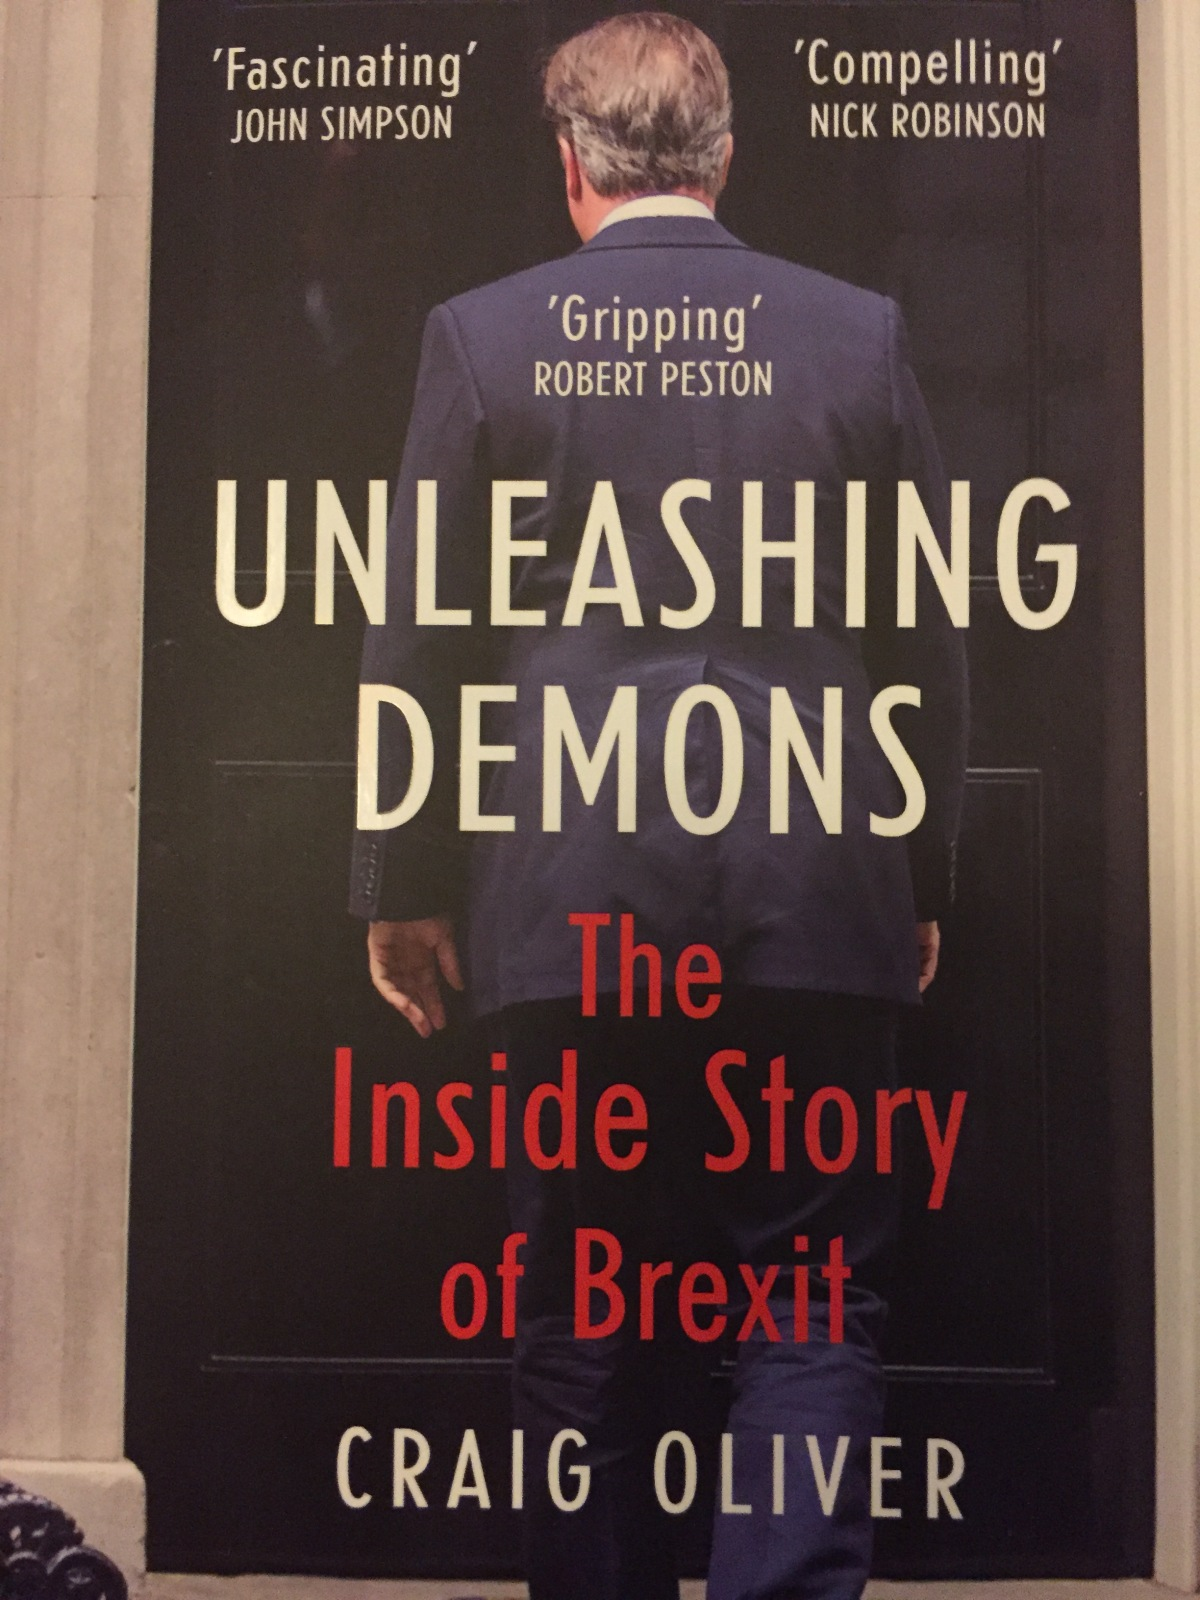 Craig Oliver's Unleashing Demons – not as bad as you might have heard